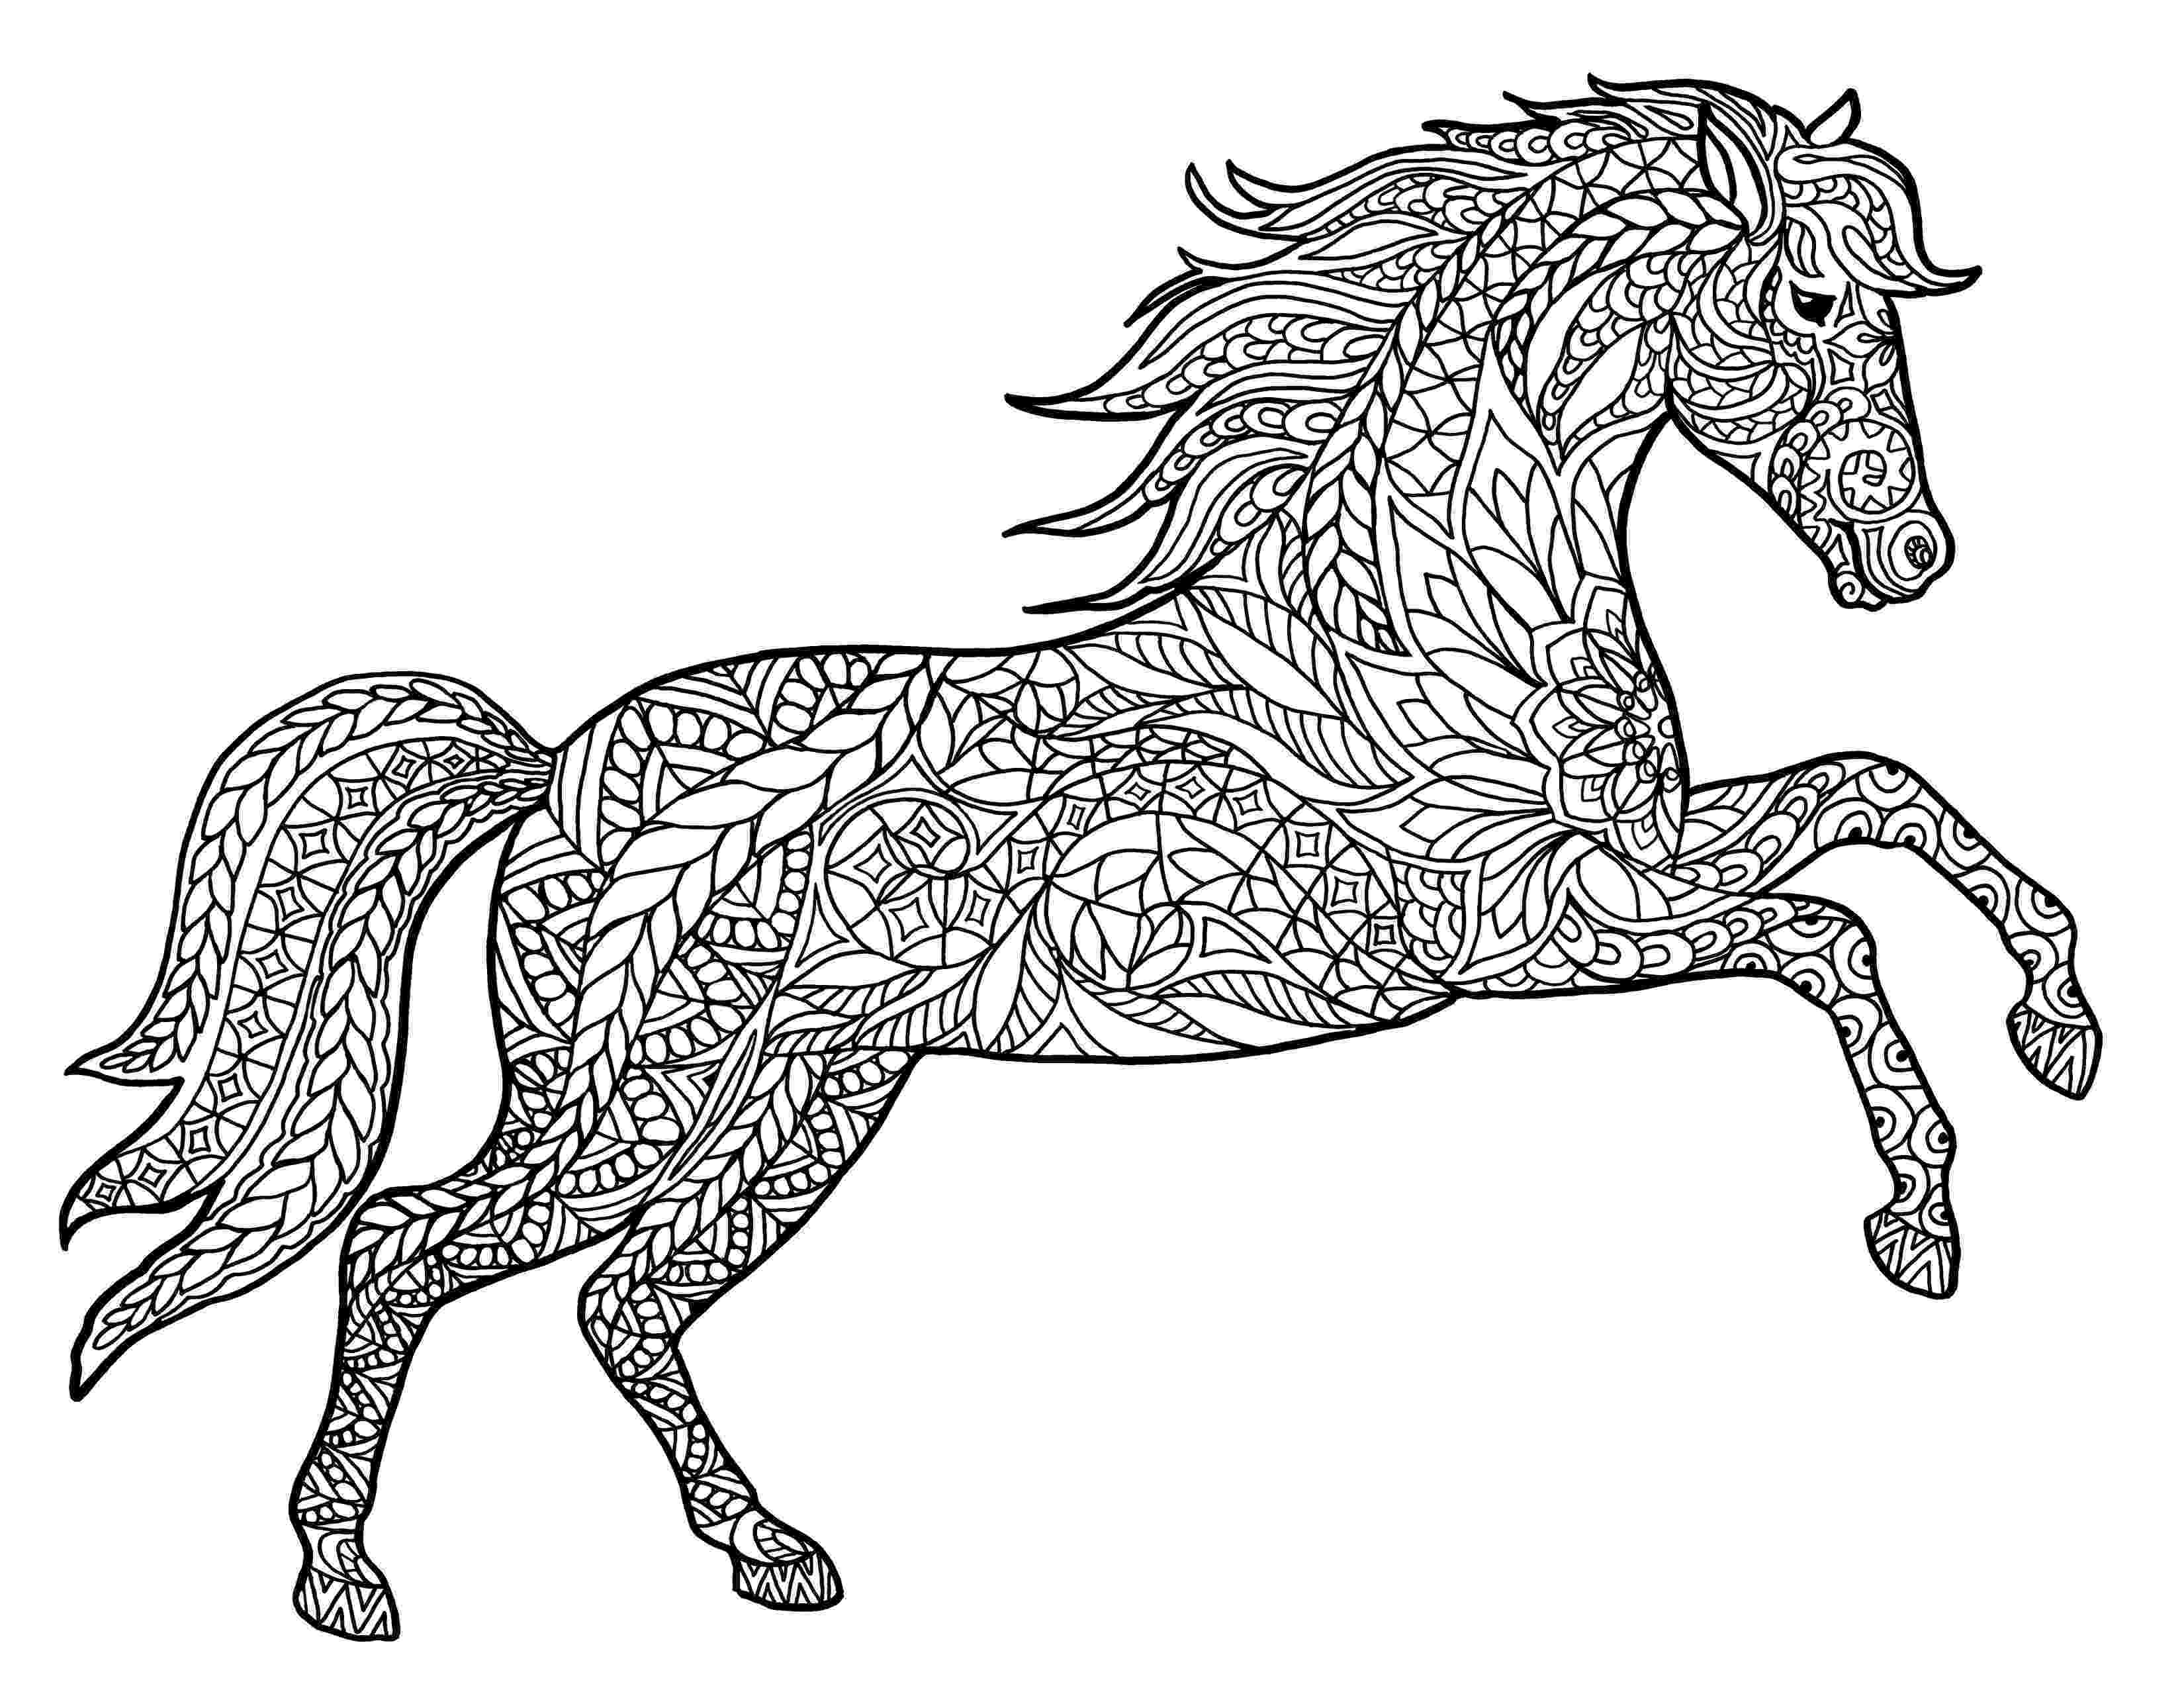 coloring pages of animals horses horse coloring pages preschool and kindergarten animals coloring of pages horses